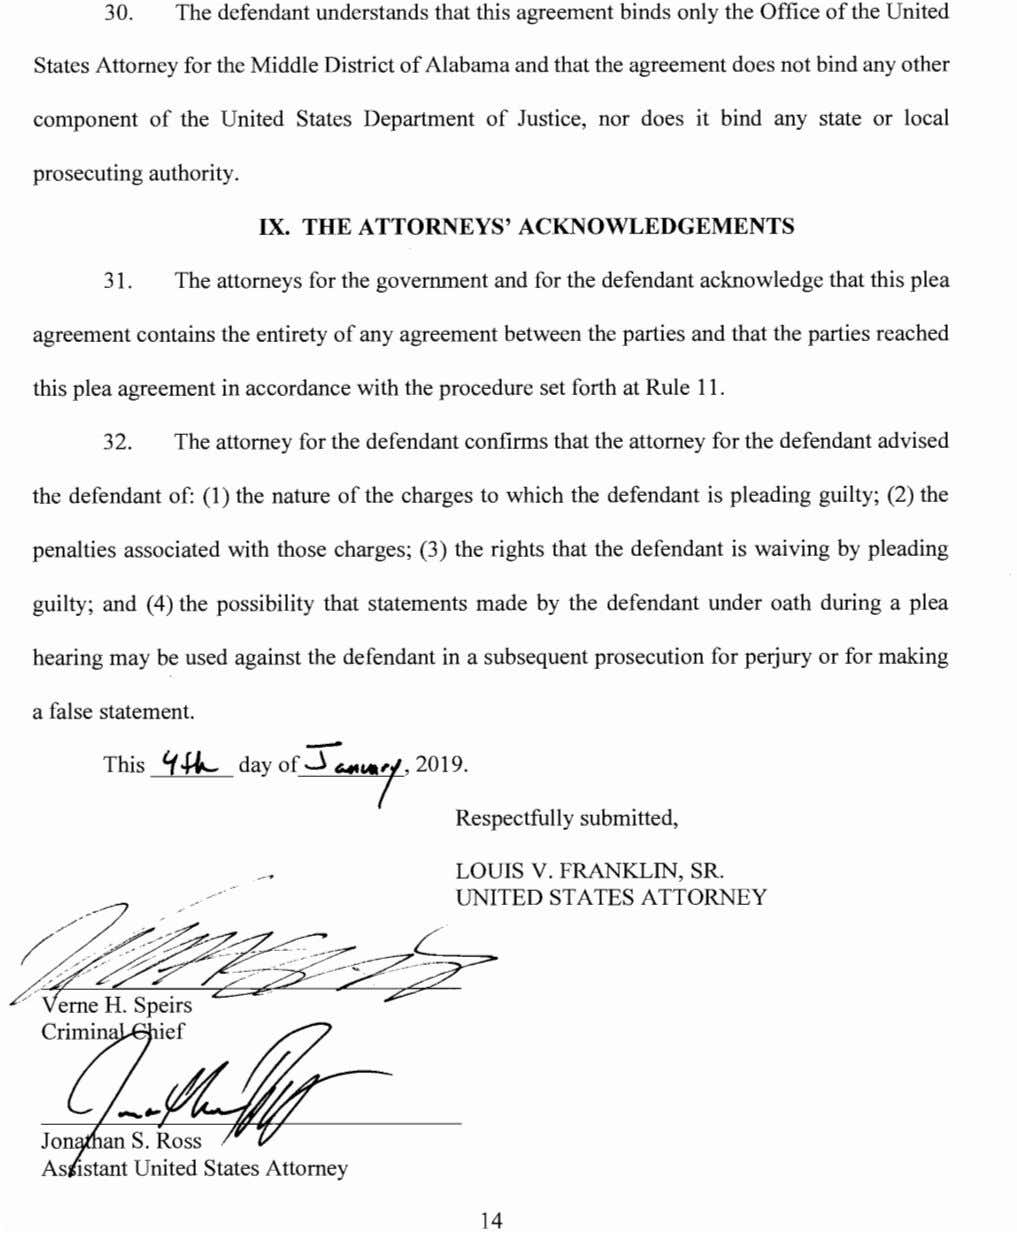 30. The defendant understands that this agreement binds only the Office ofthe United States Attorney